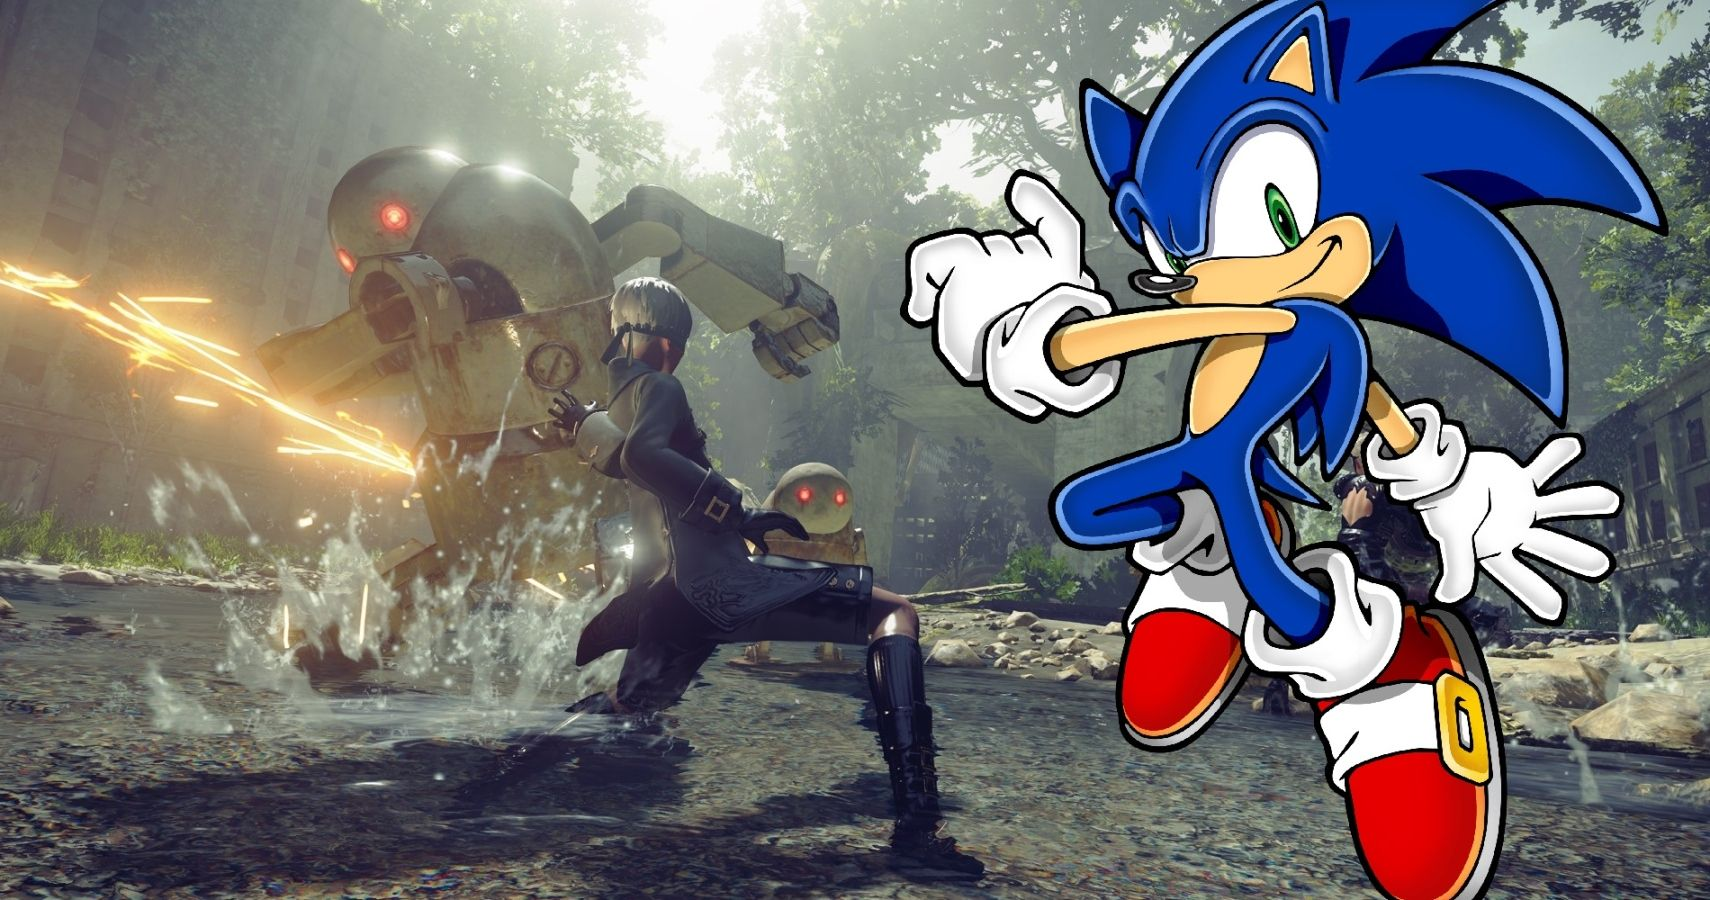 Sonic The Hedgehog Creator Is Making An Original Action Game For Square Enix